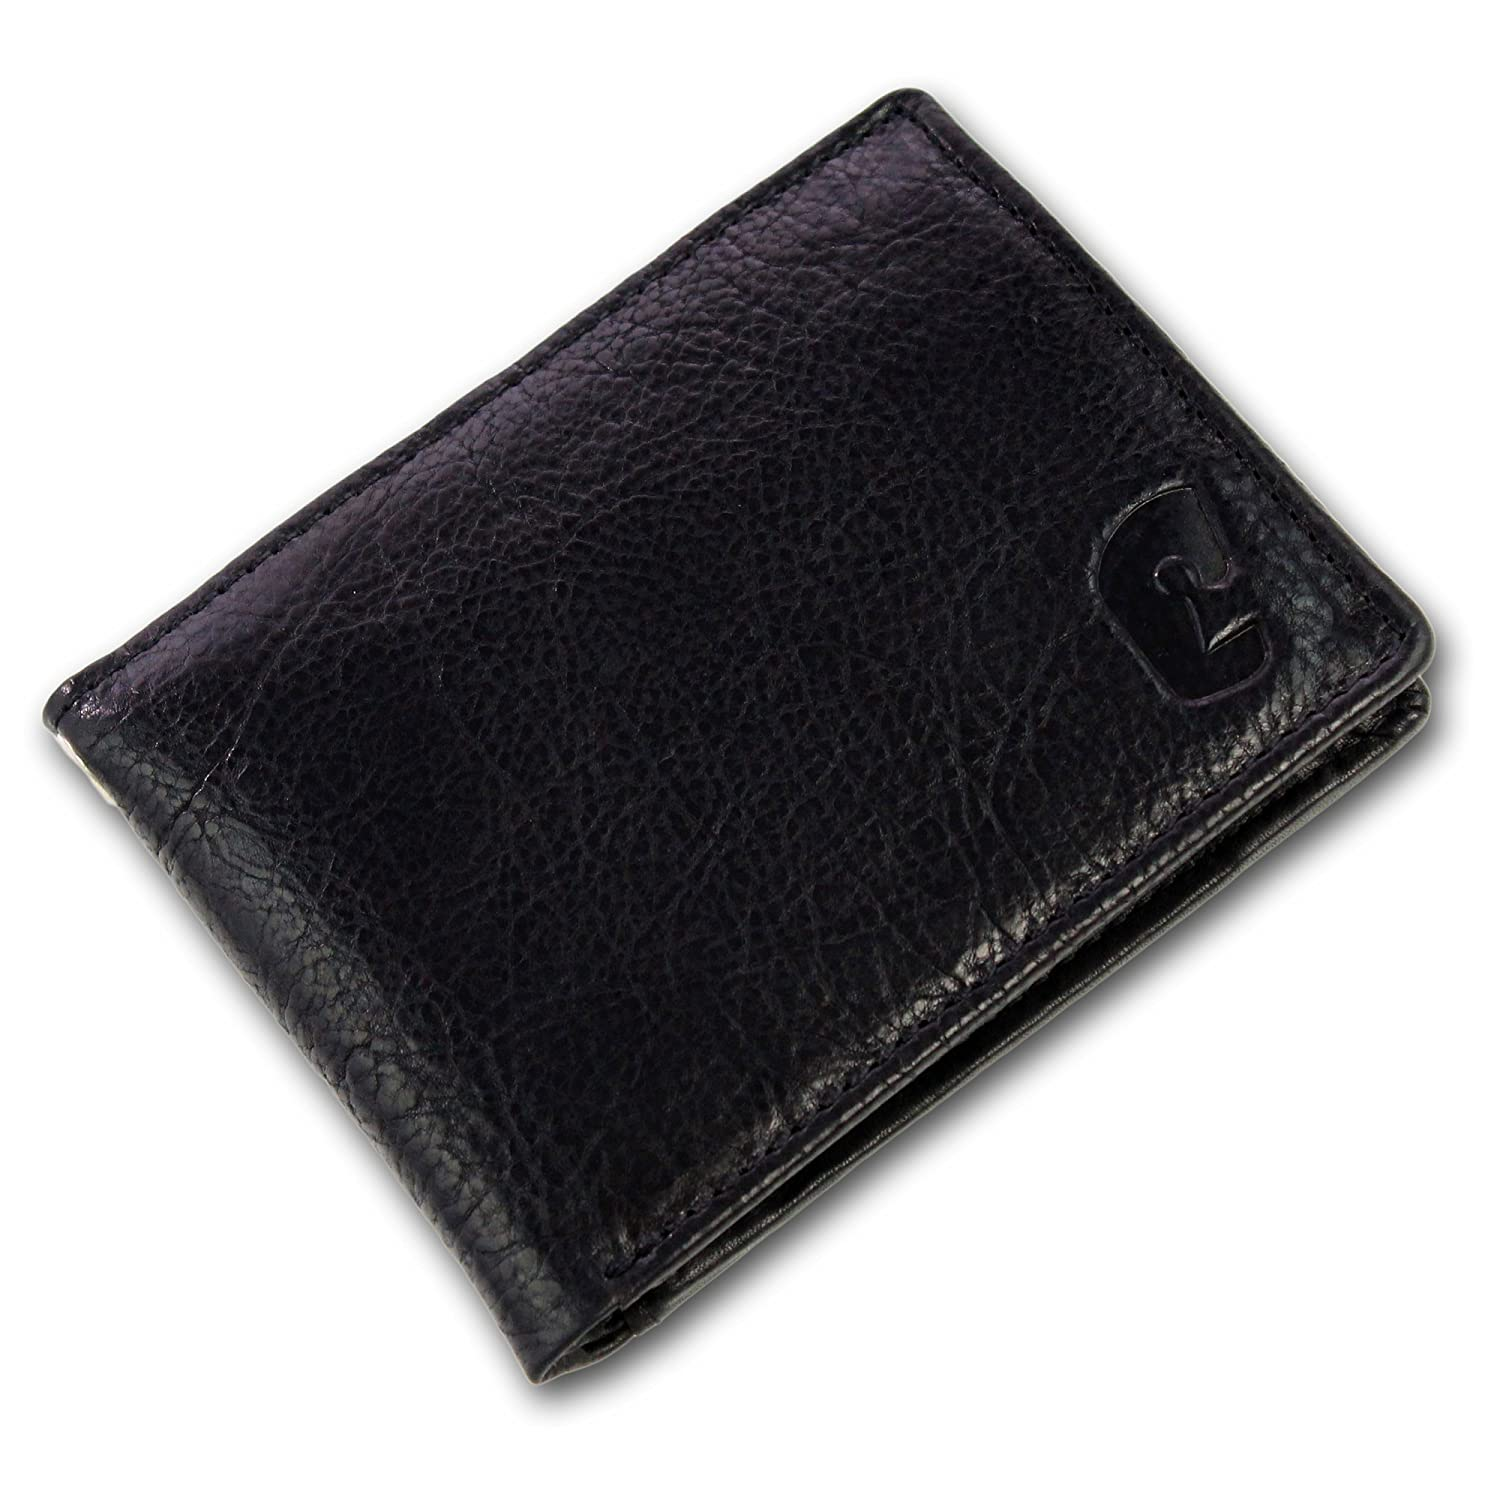 best selection of good looking largest selection of Amazon.com: Safekeepers Leather Biker Wallet – Compact Chain ...